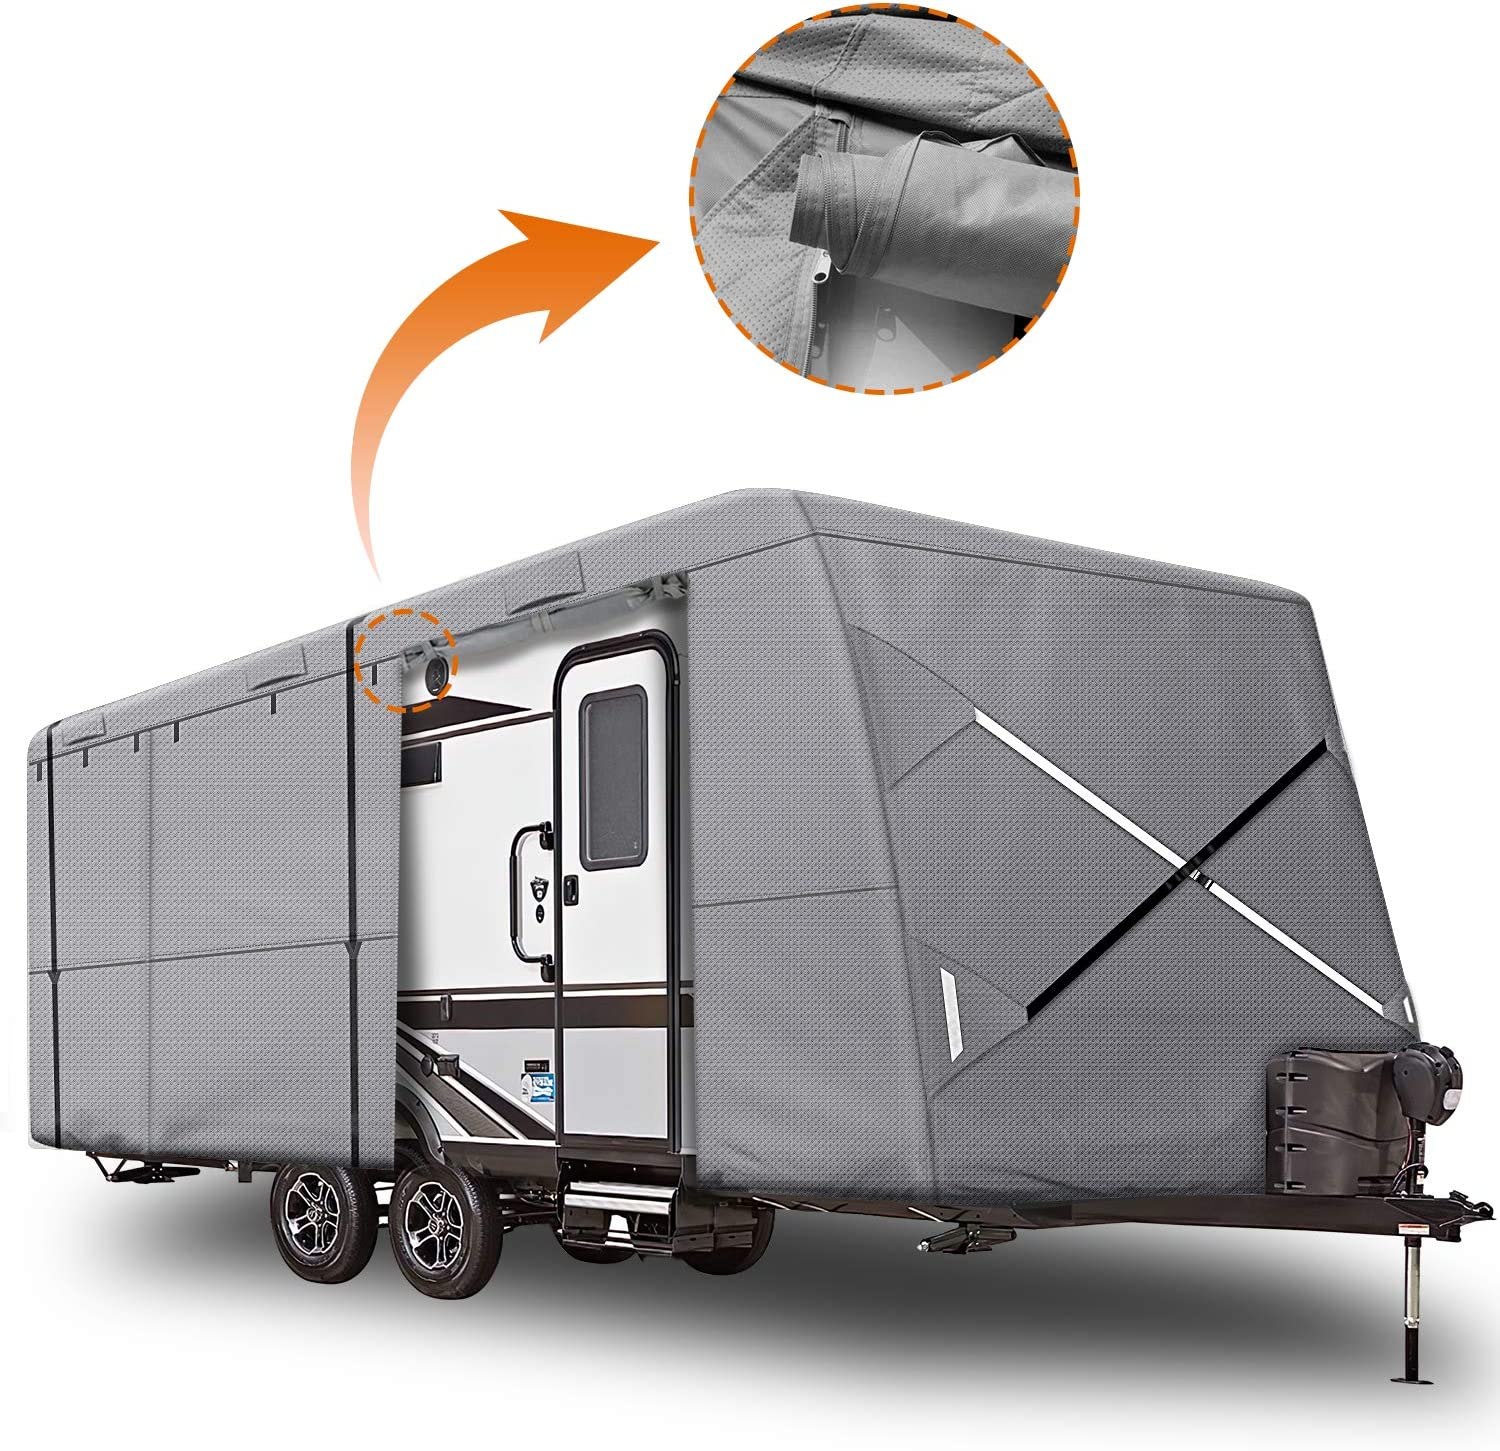 Fits Travel Trailer or Toy Hauler 27-30 XGear Outdoors Travel Trailer RV Cover with 3-Ply Roof for Max Weather Protection Grey